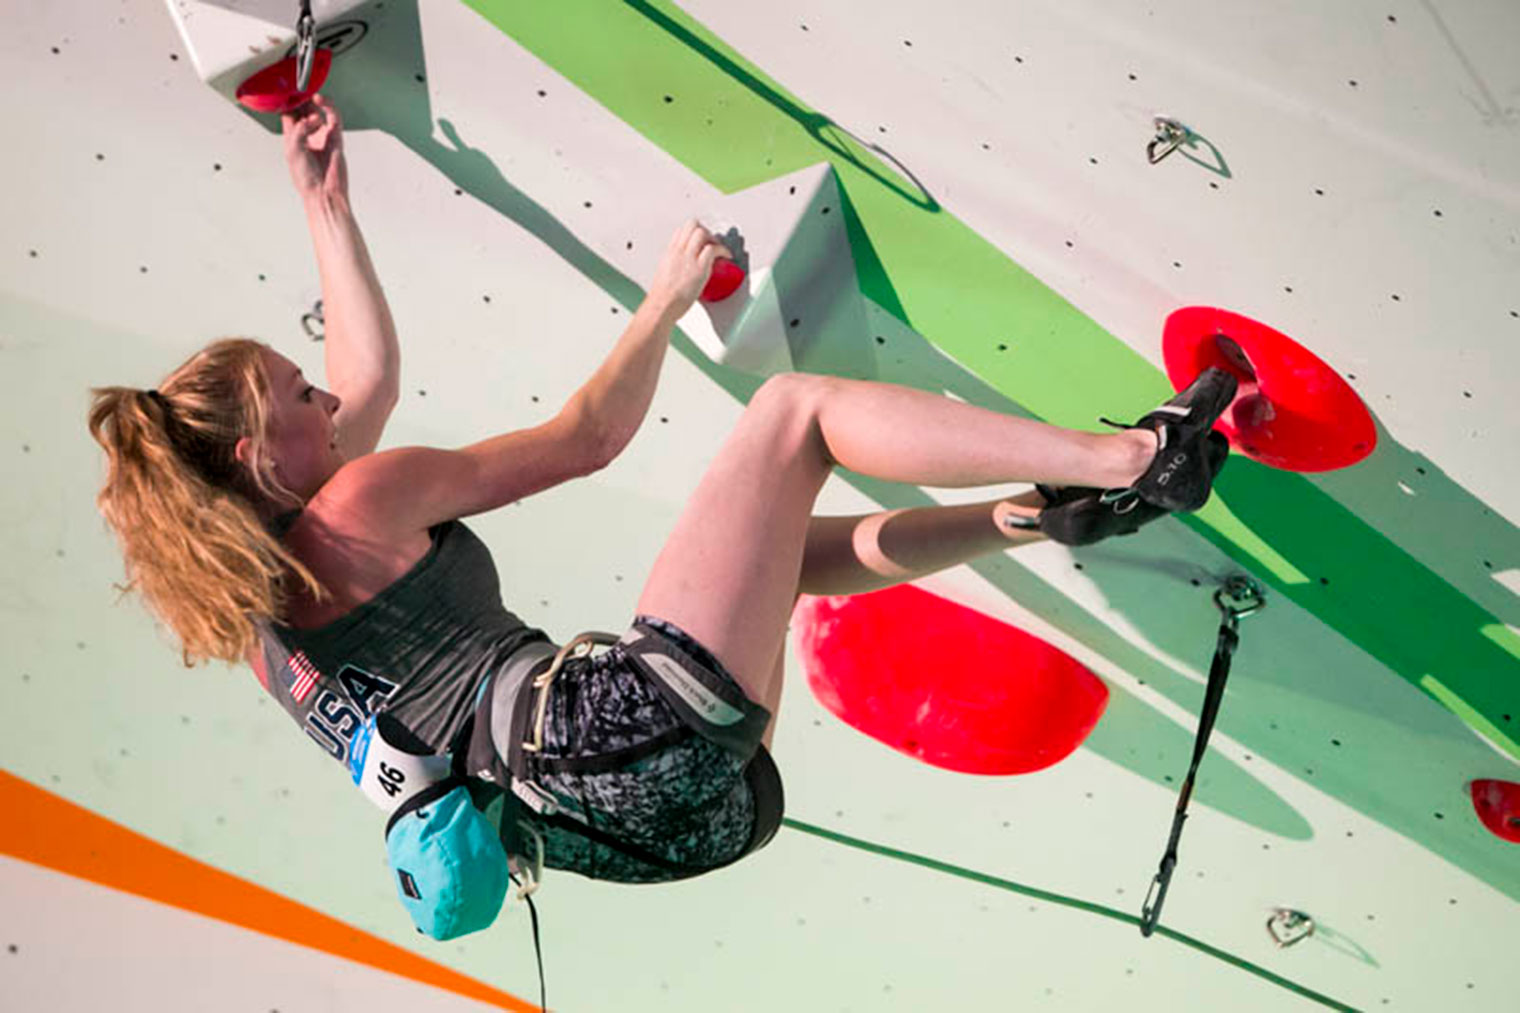 Tori Perkins represented Liberty University in the women's sport climbing finals at Saturday's World University Championships in Bratislava, Slovakia.